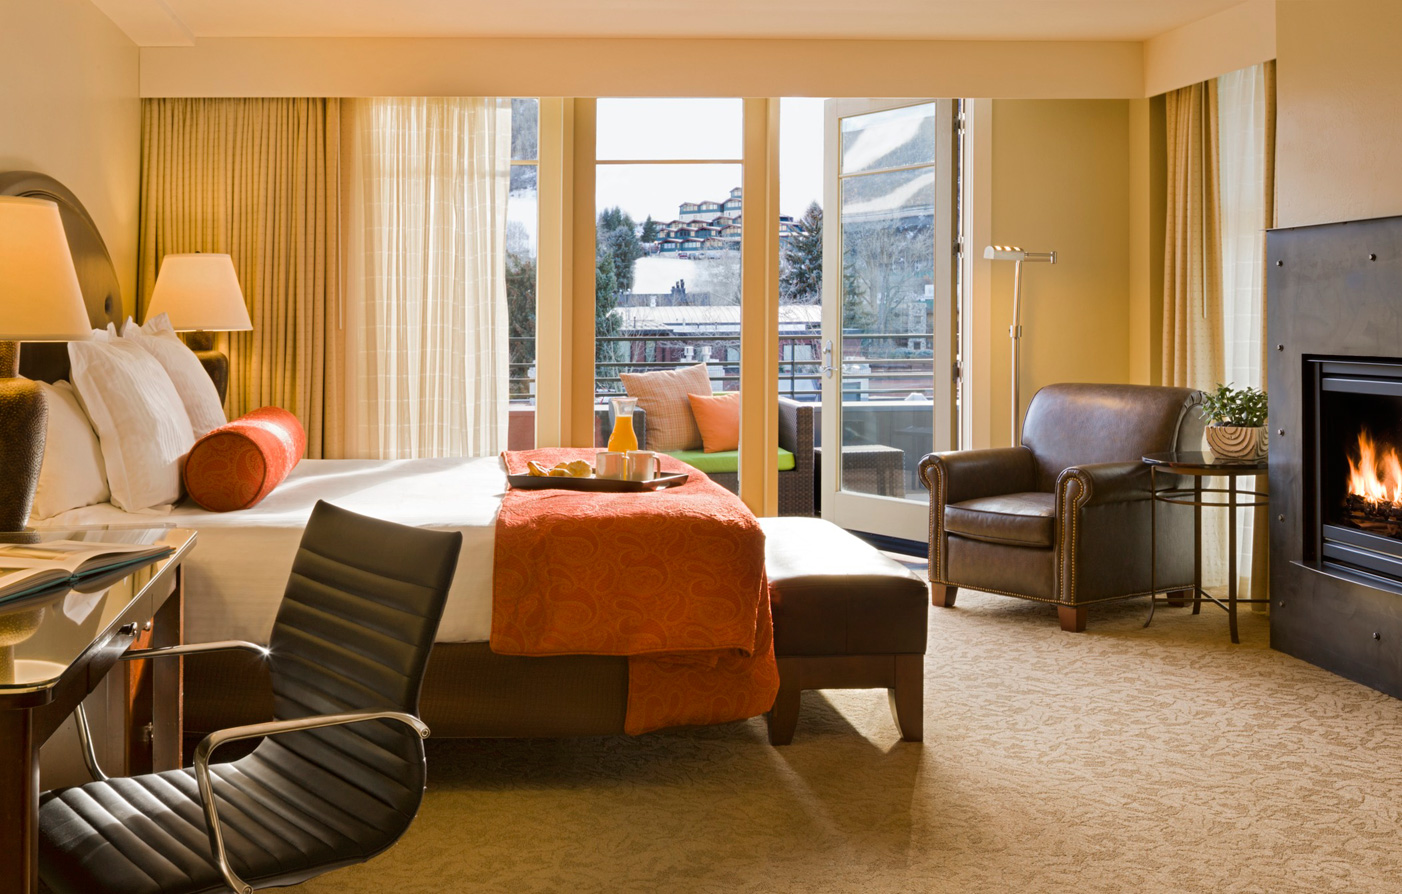 Accommodations:      The Limelight Hotel  in Aspen